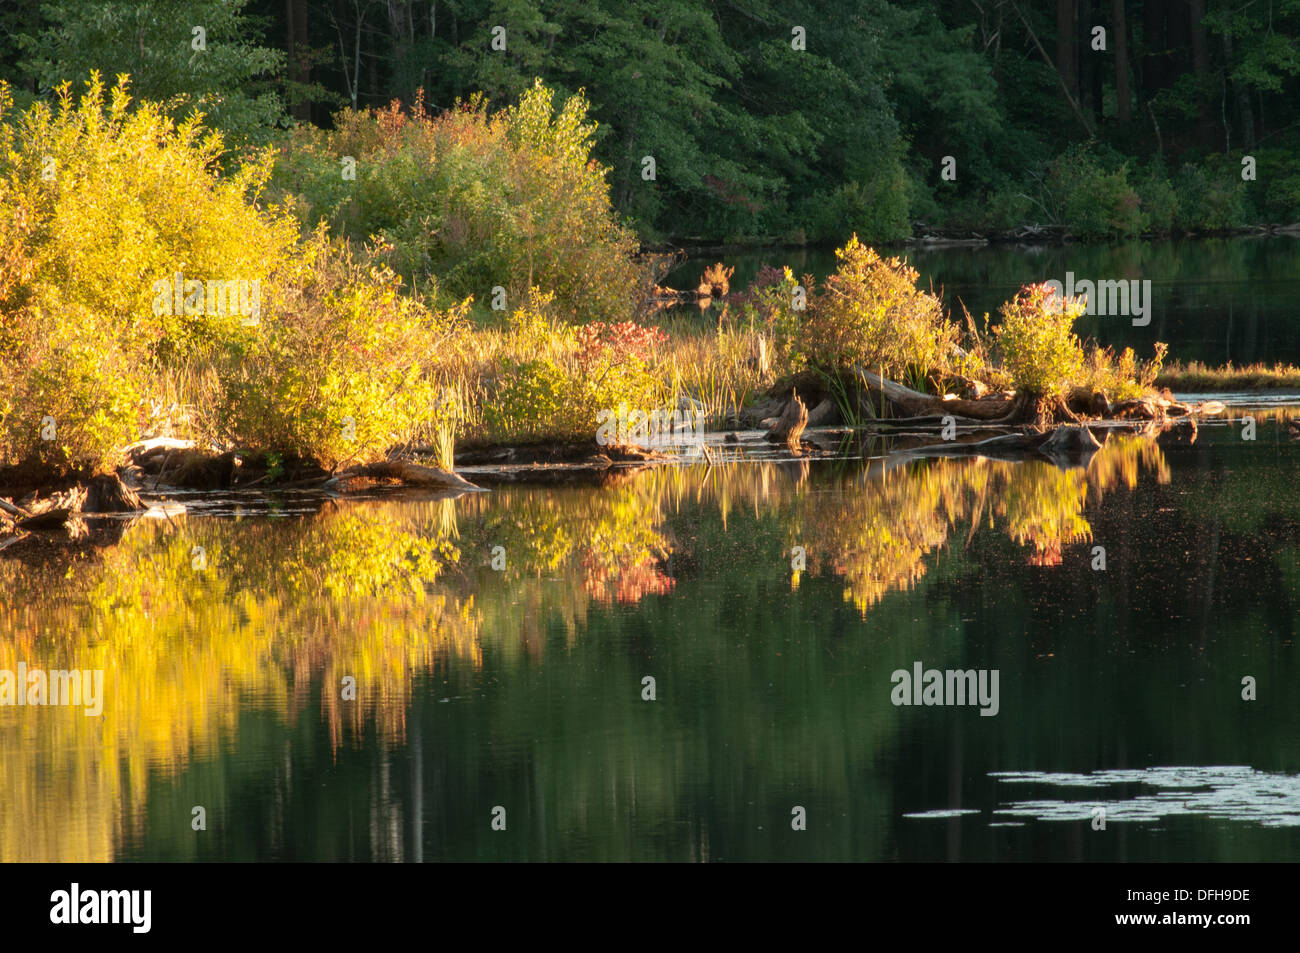 Pond with fall colors in Andover, Massachusetts - Stock Image